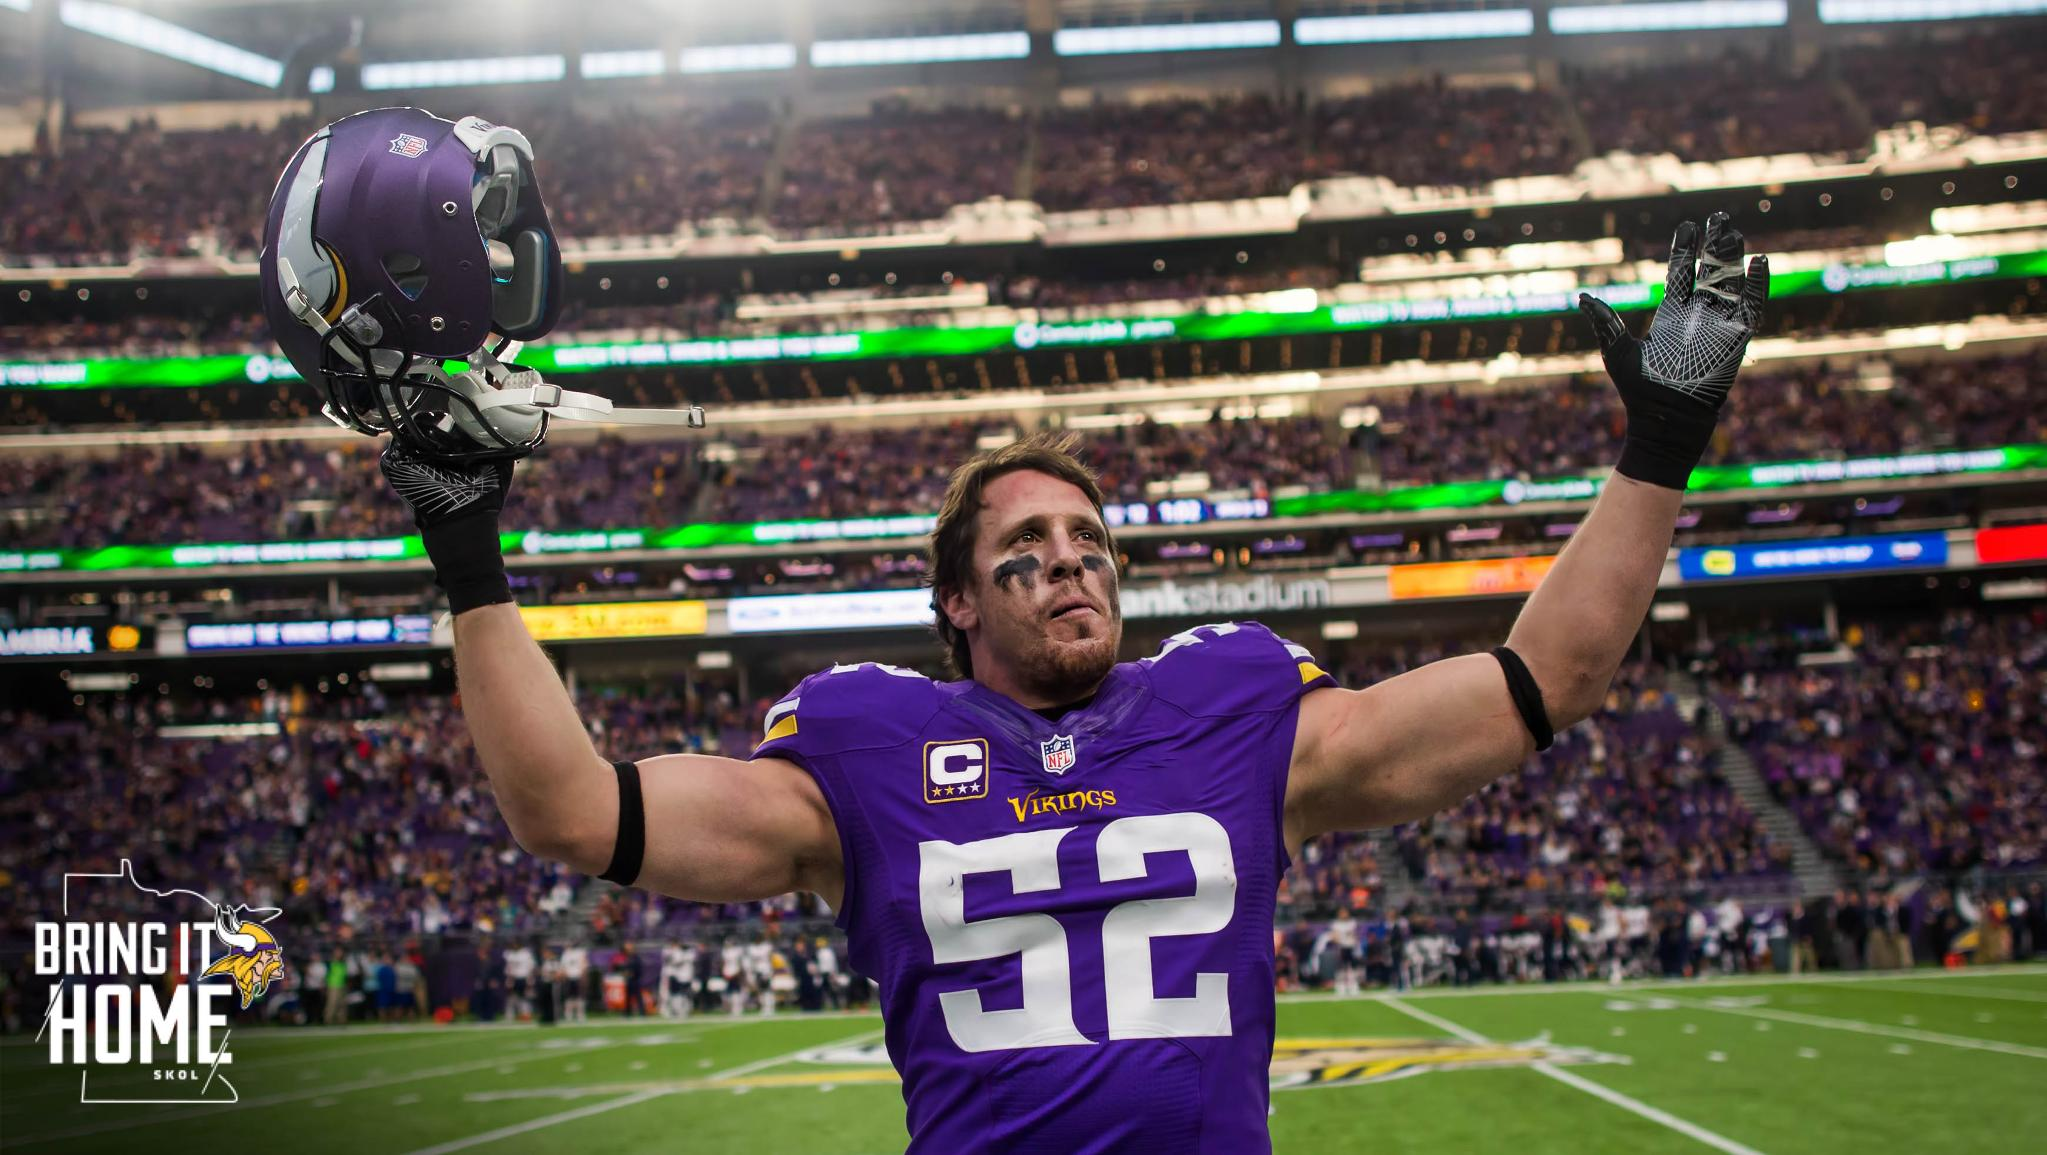 .@chadgreenway52 will serve as the honorary captain for #NOvsMIN!   ��: https://t.co/jYTxivvp1F https://t.co/jDym25UFH3